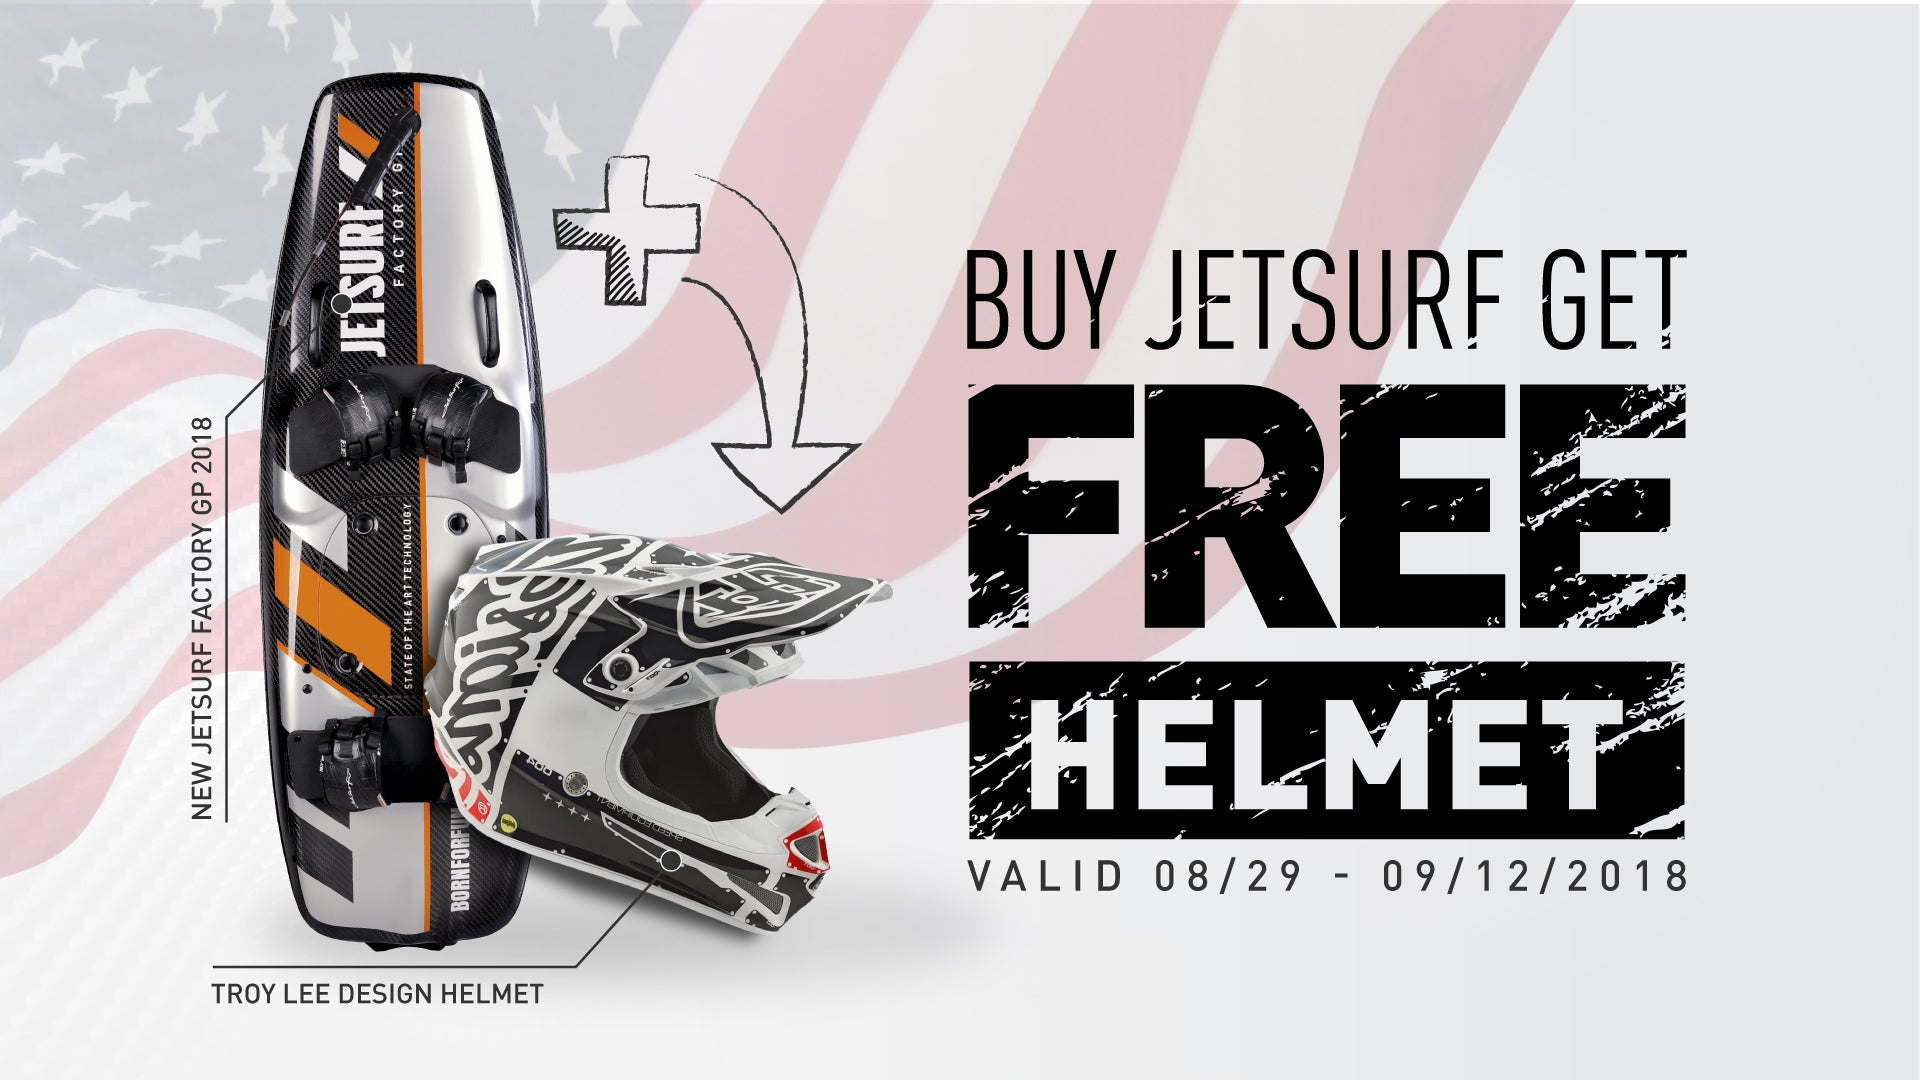 JetSurf labor day sale